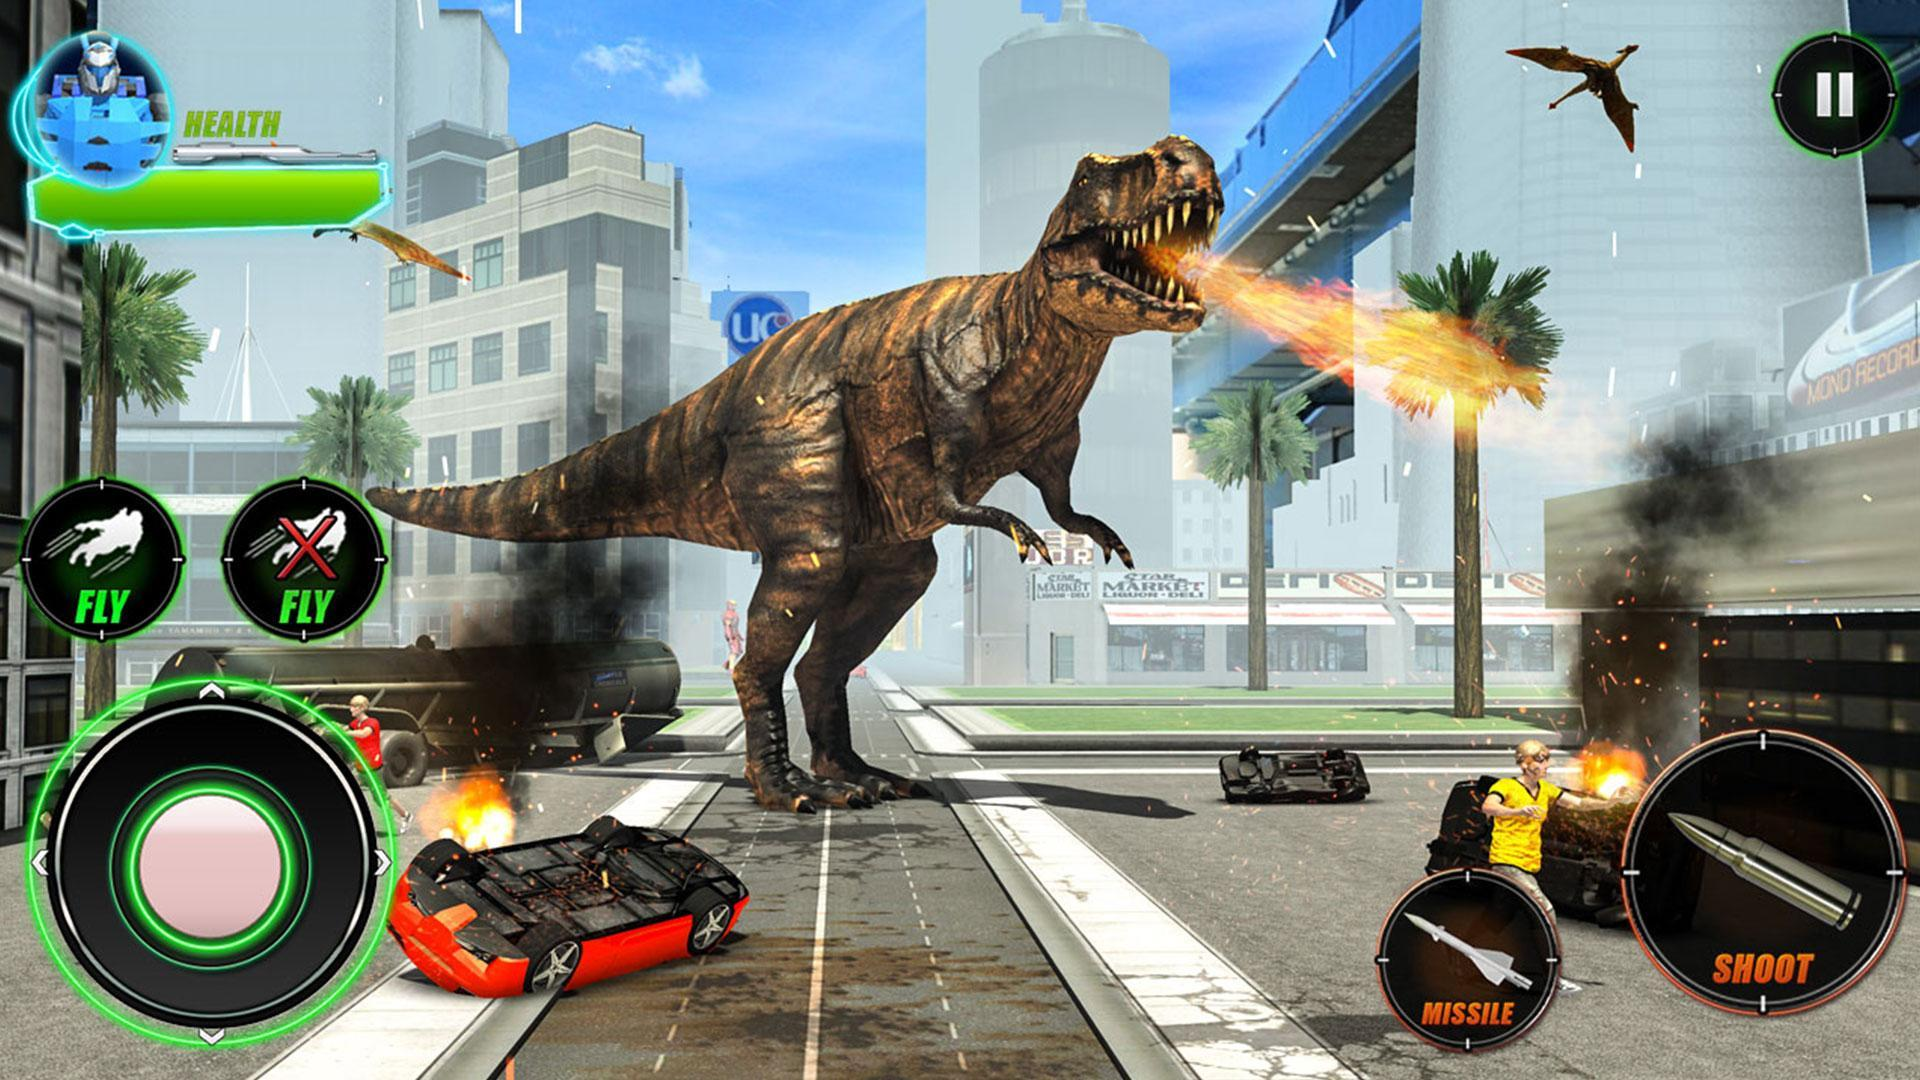 Wild Dinosaur Rampage : Flying Robot Shooting Game 2.3 Screenshot 7